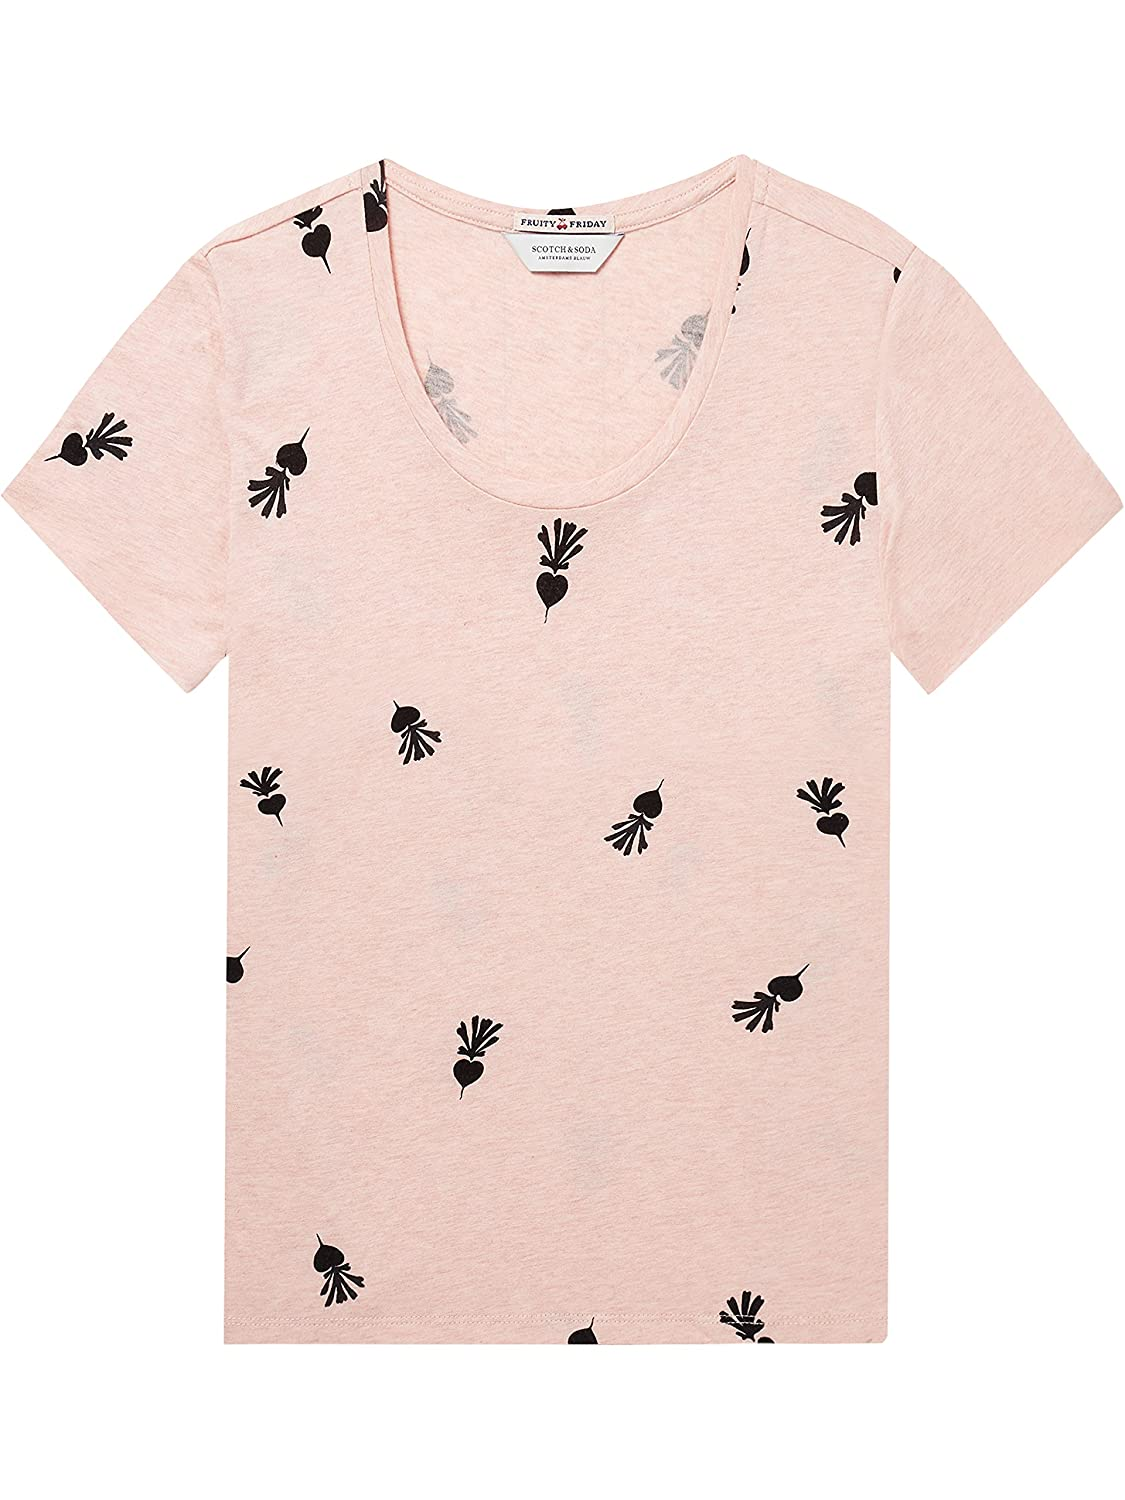 Scotch & Soda Relaxed Fit tee In Various Prints Camiseta para Mujer